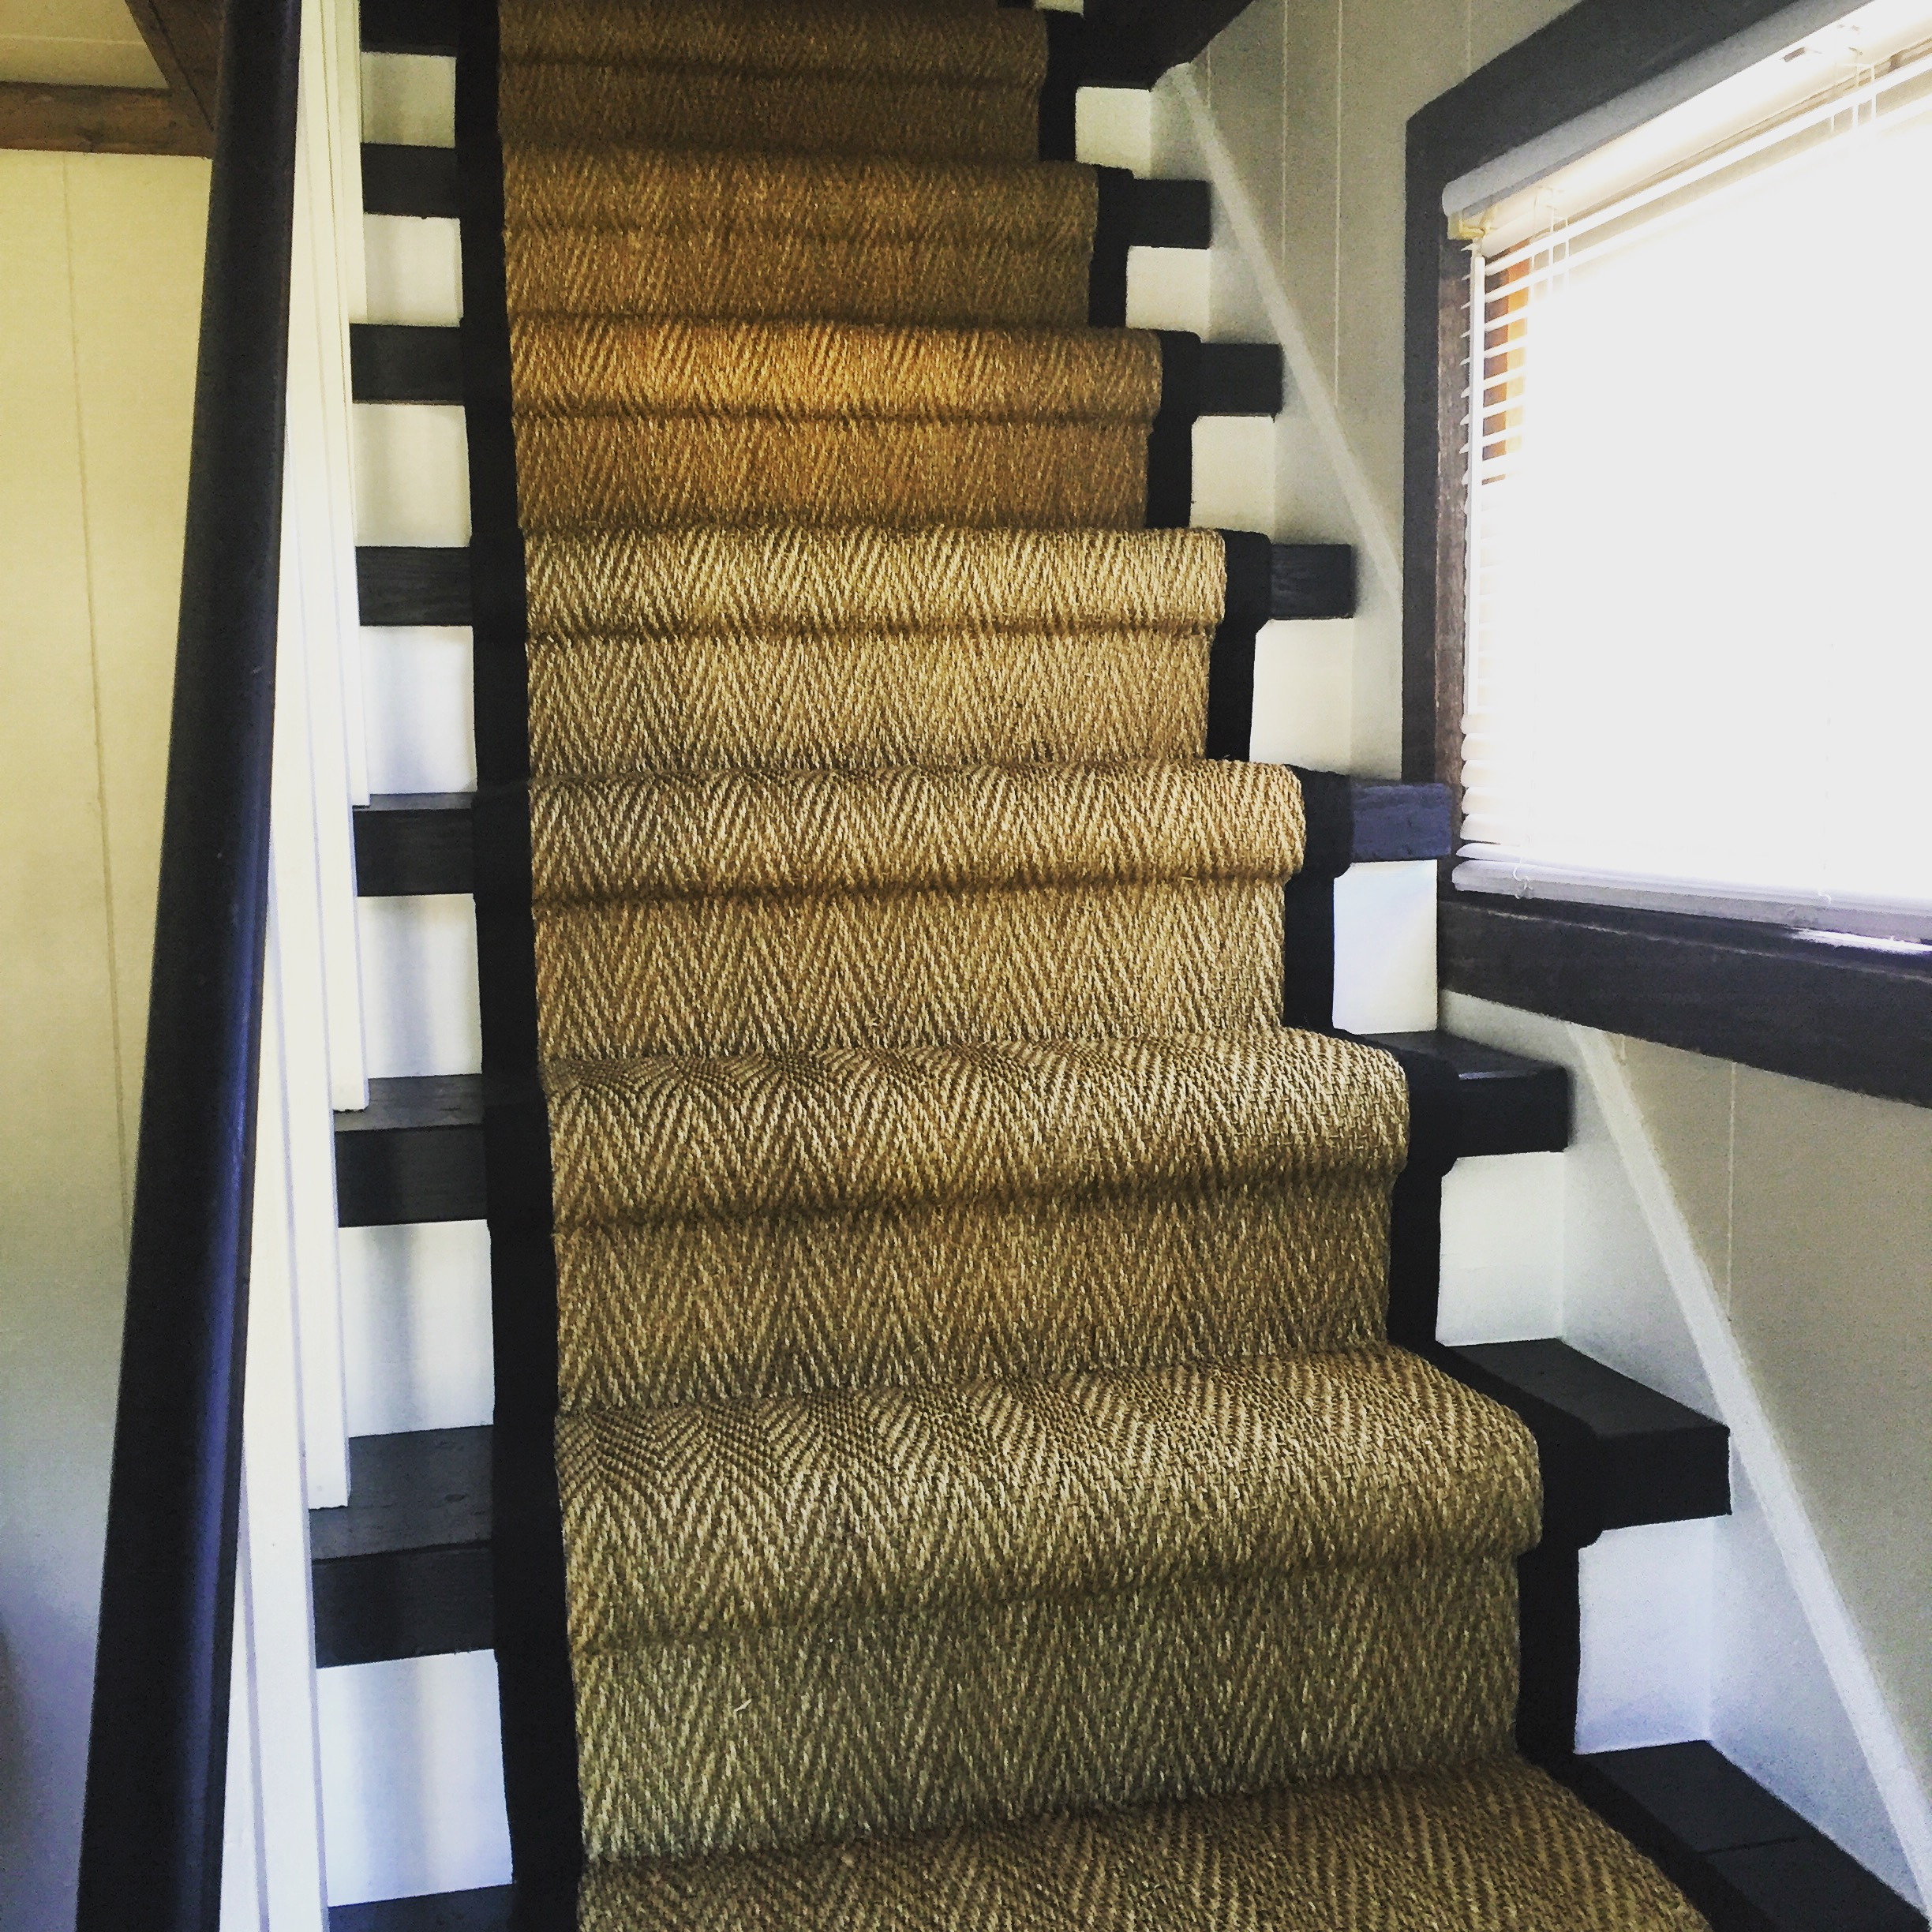 Seagrass Sisal On Staircase Seagrass Sisal On Staircase With Wide Binding  ...